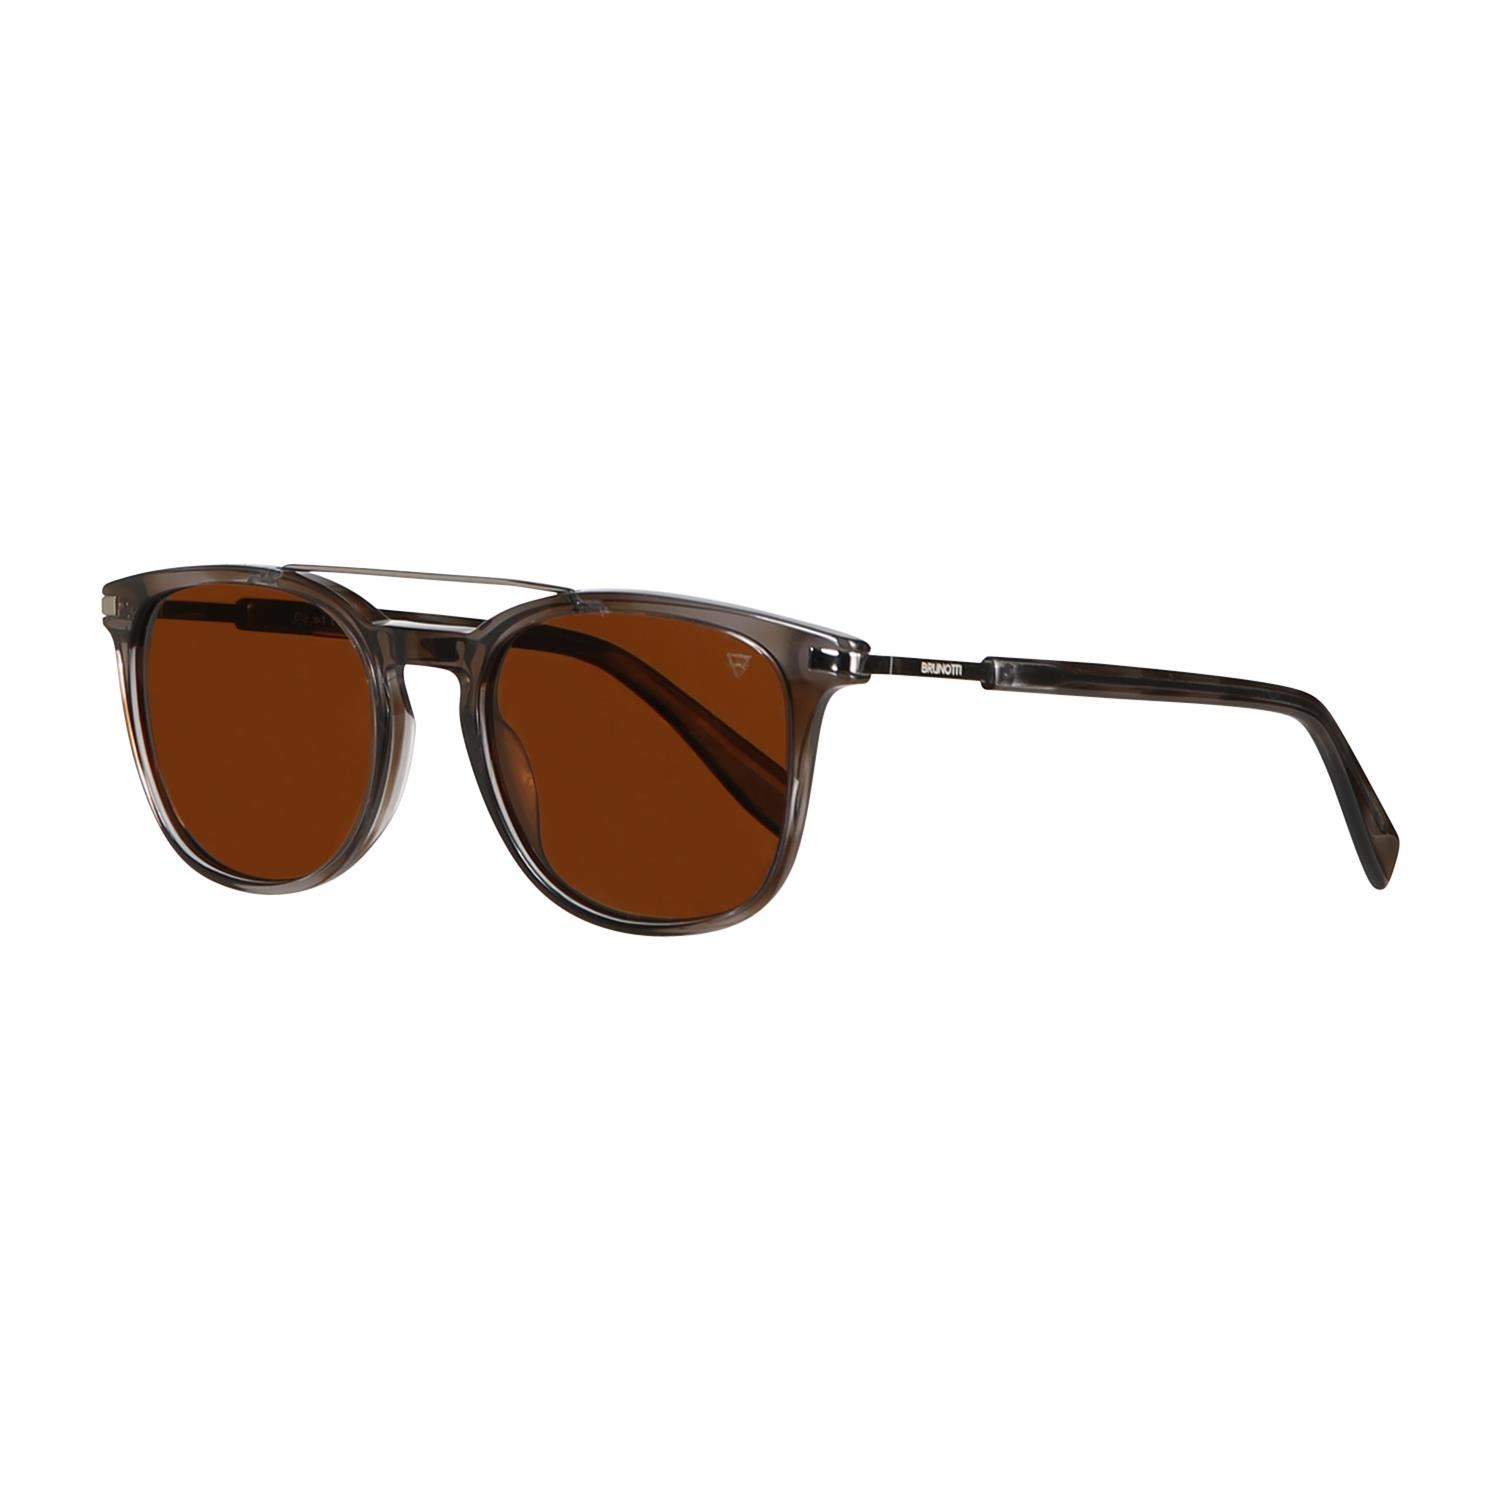 Brunotti Duero  (black) - men sunglasses - Brunotti online shop